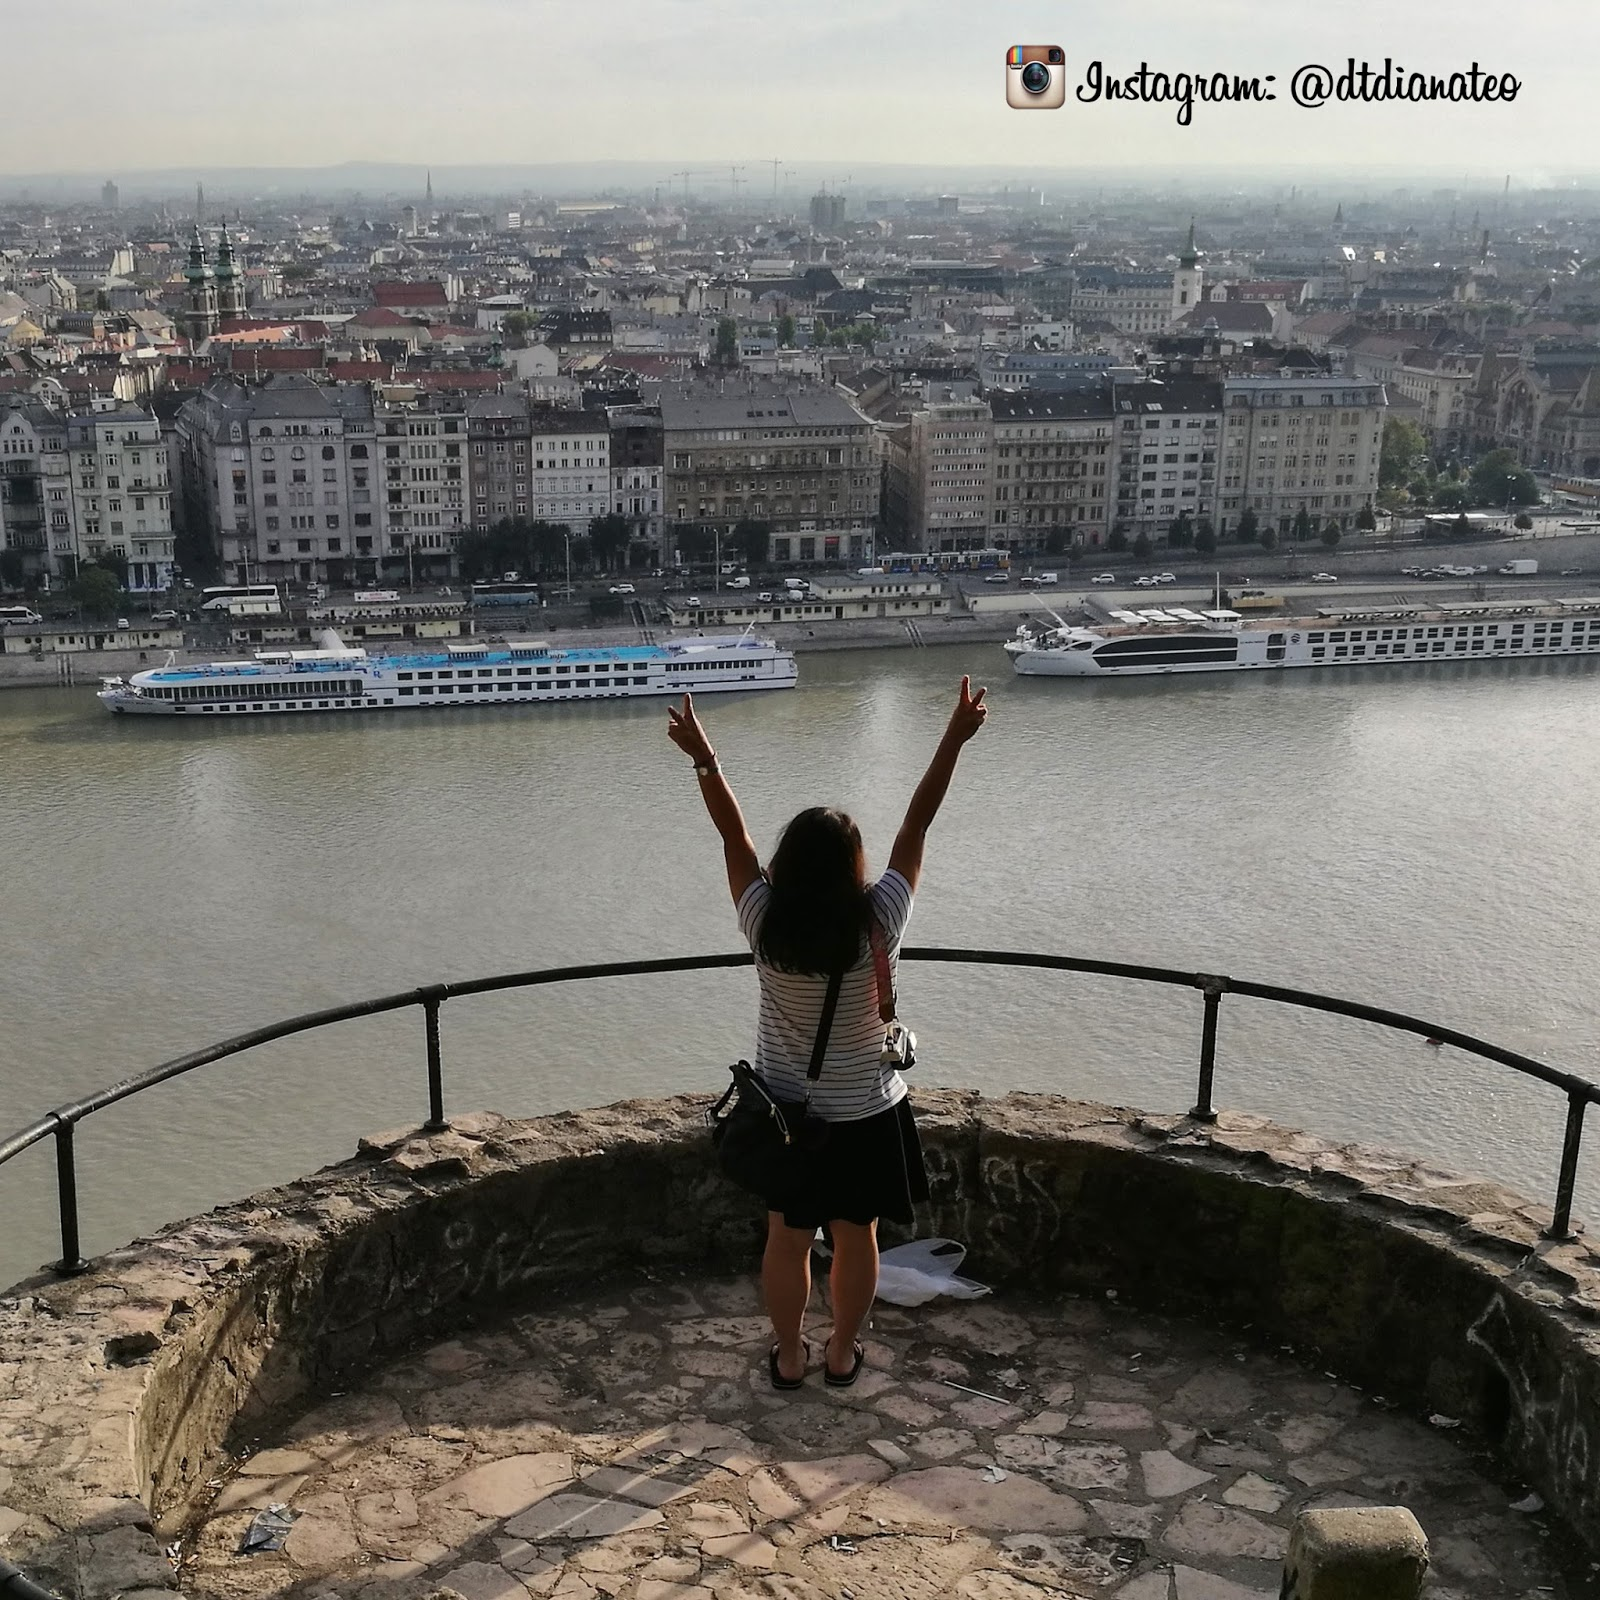 travel & living journal of dt: solo trip to europe